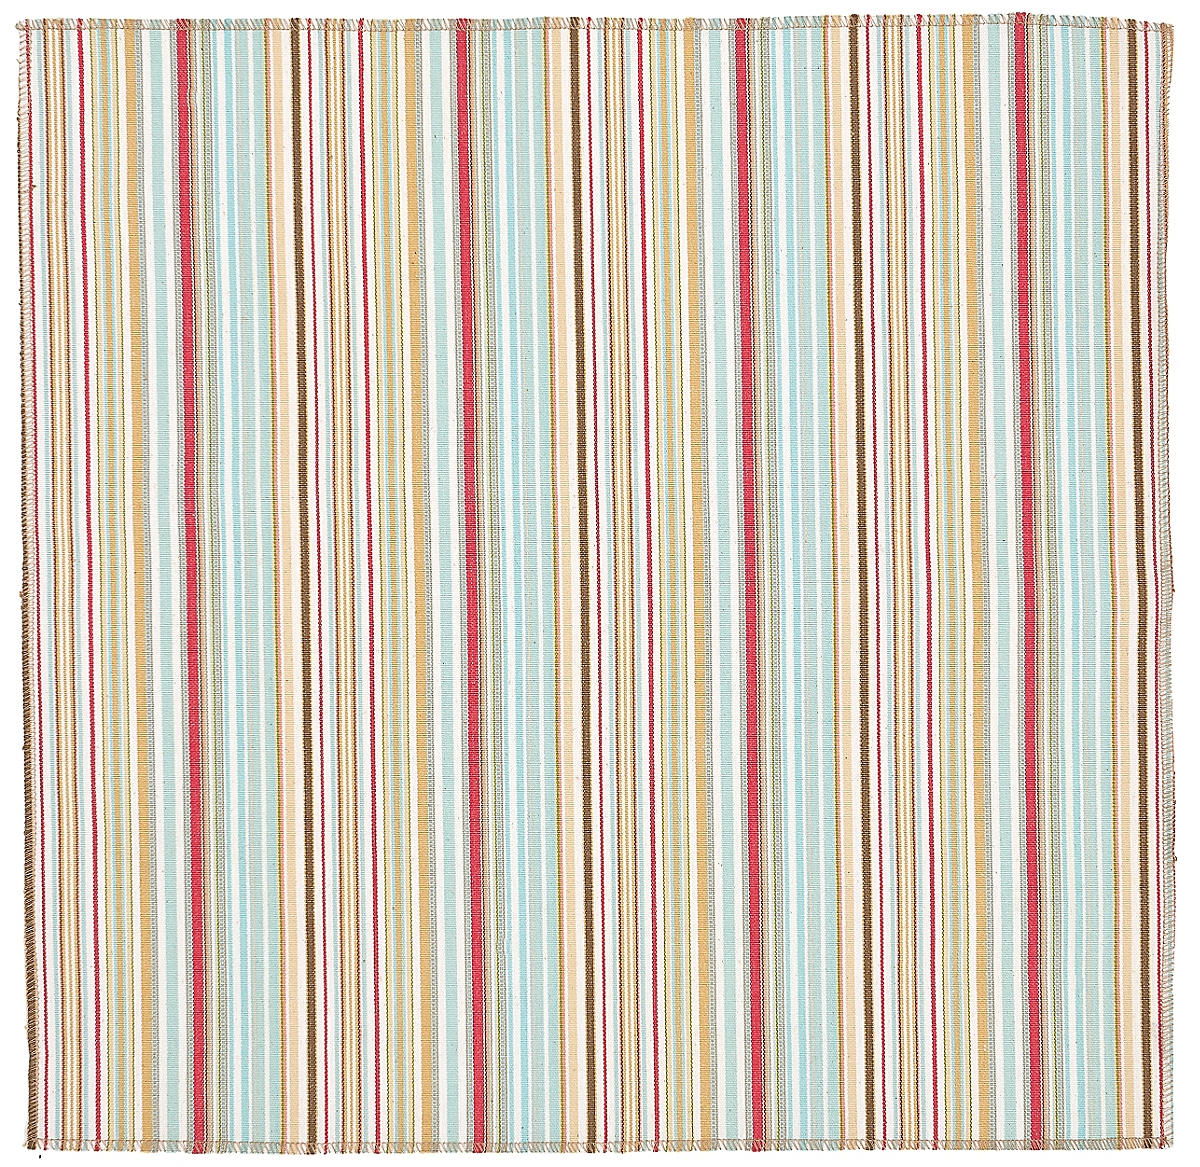 Sassy Stripes: Bluebell (fabric yardage)